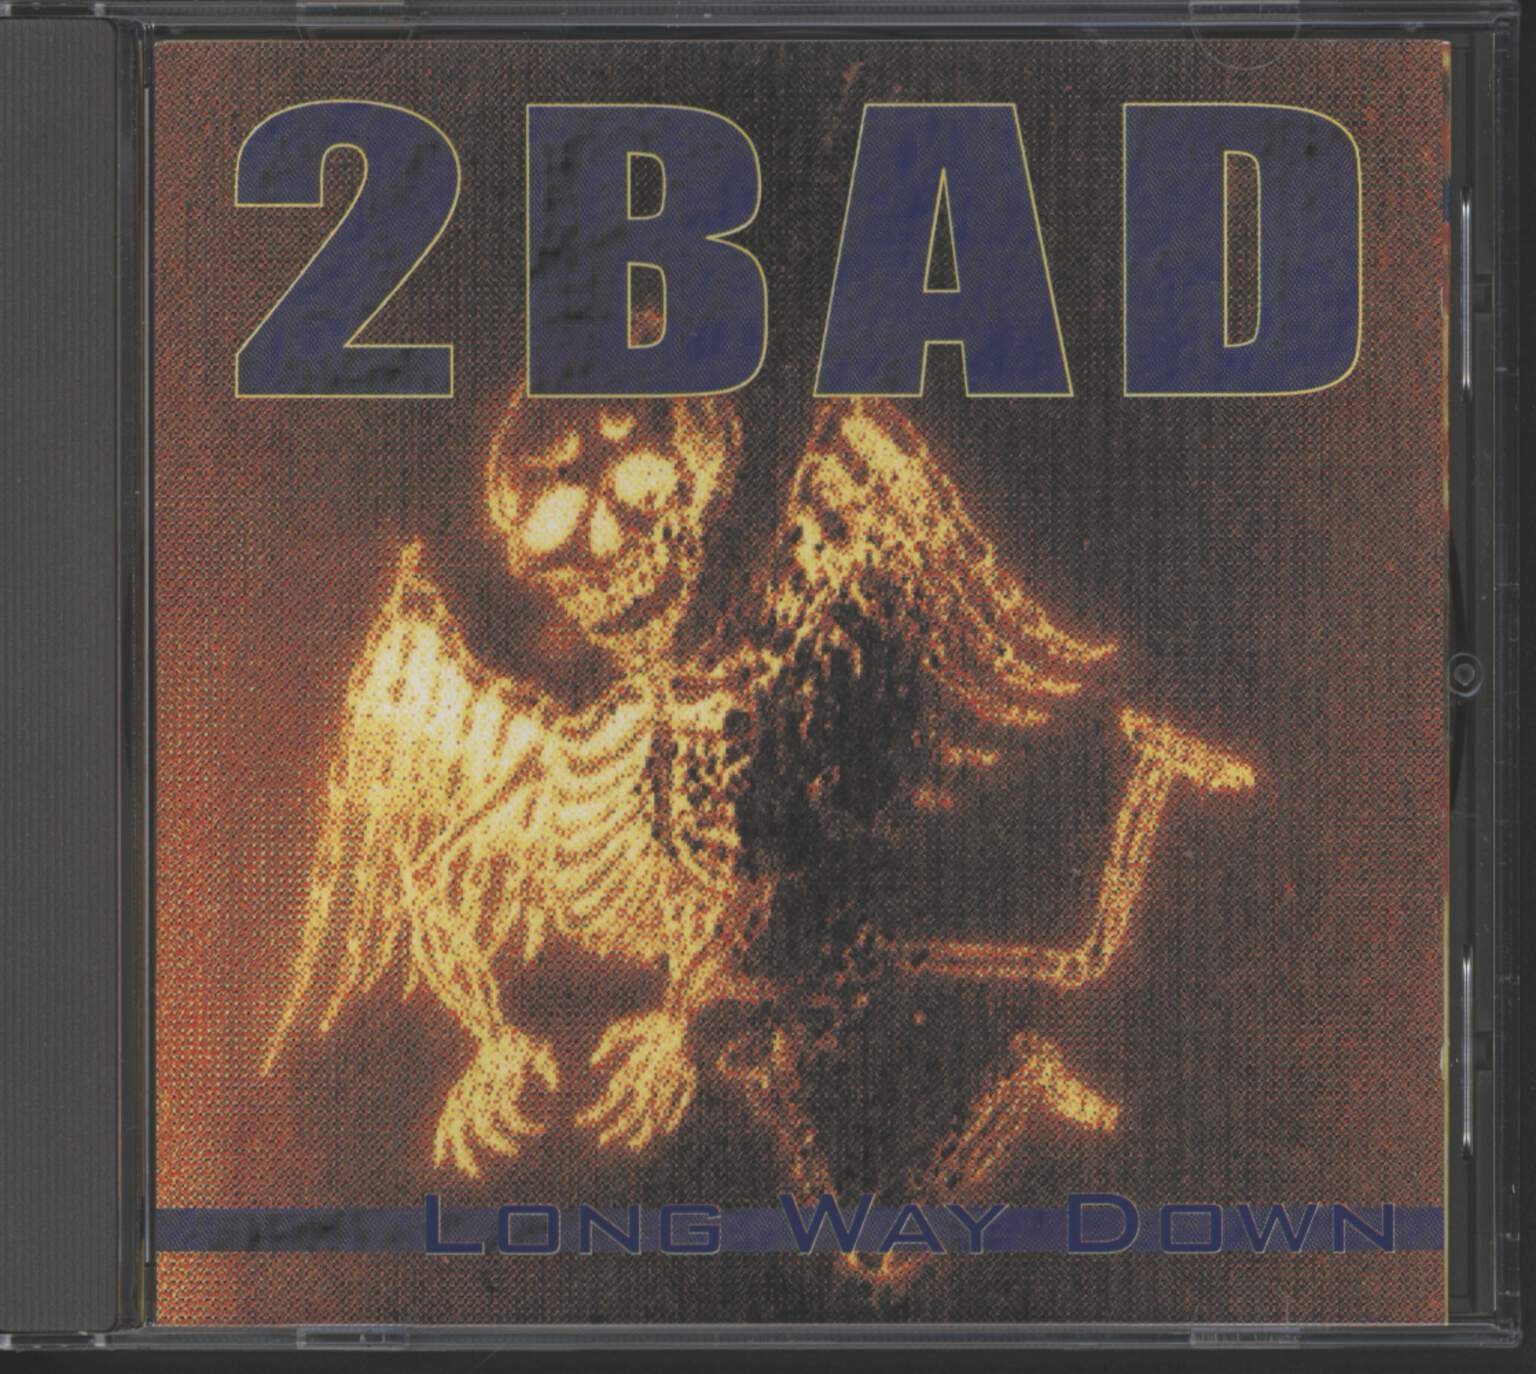 2 Bad: Long Way Down, Mini CD